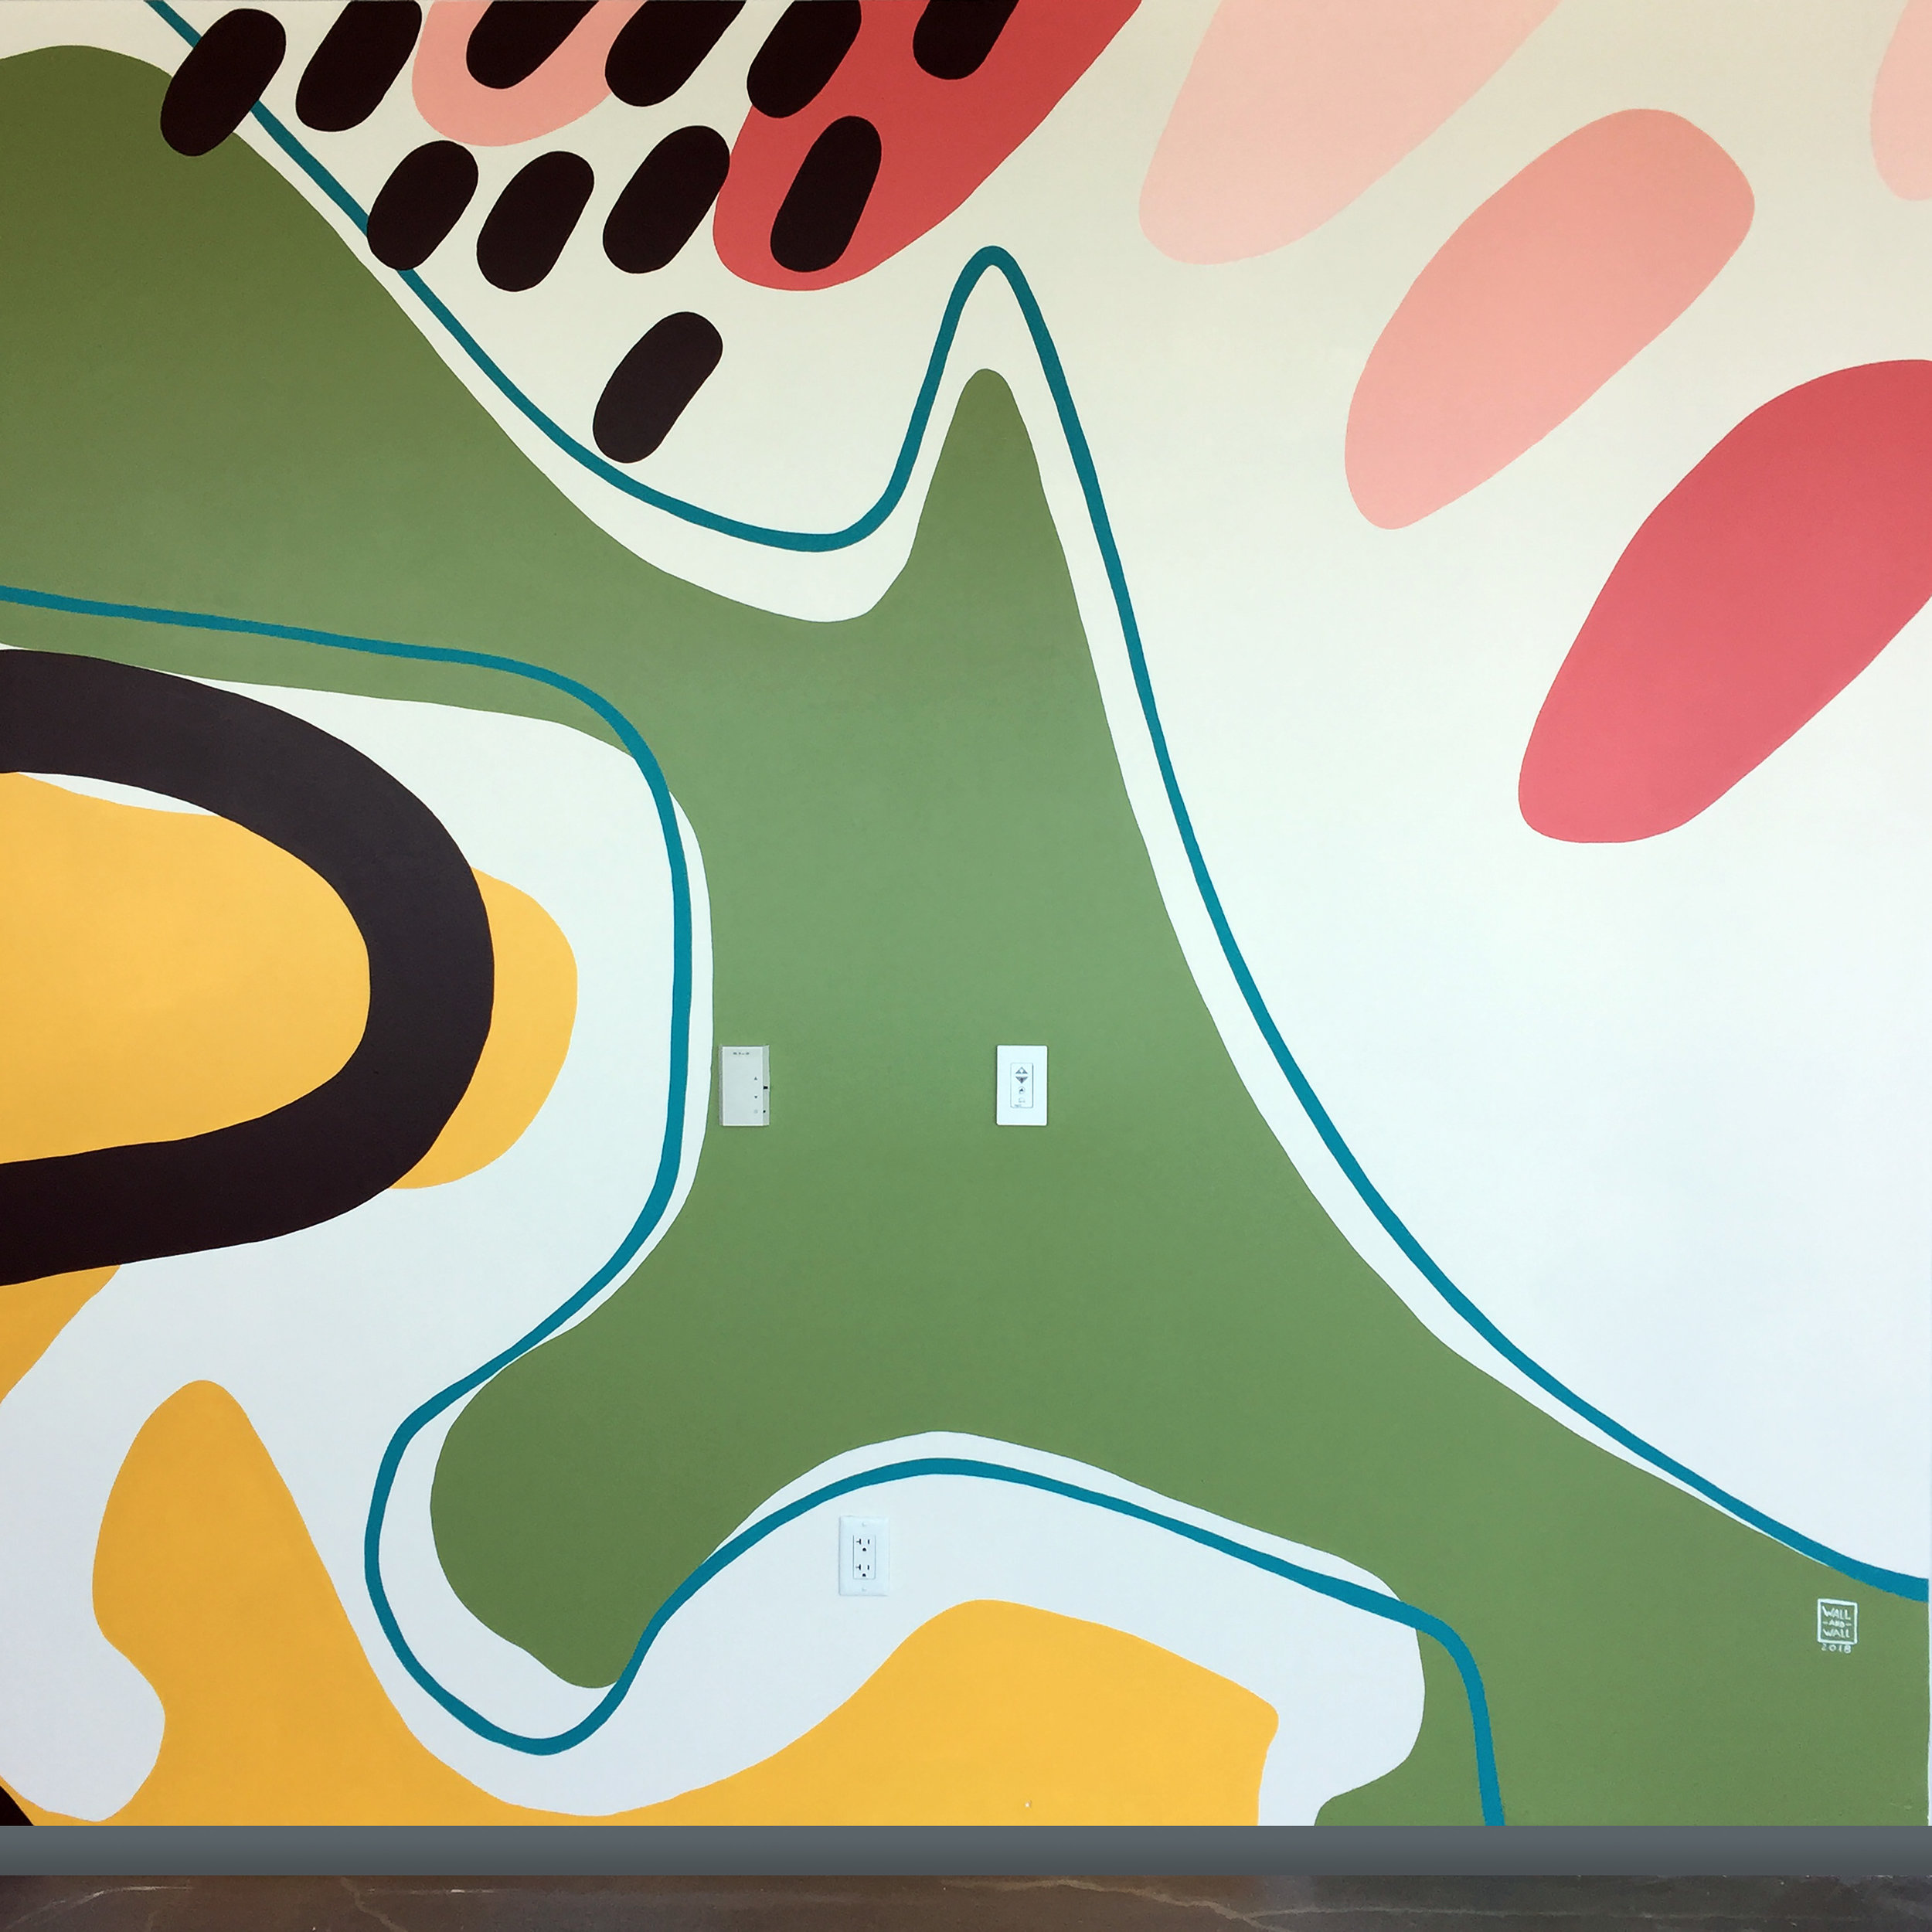 Office-commercial-mural-san-francisco-google-wall-and-wall-mural-company_003.jpg